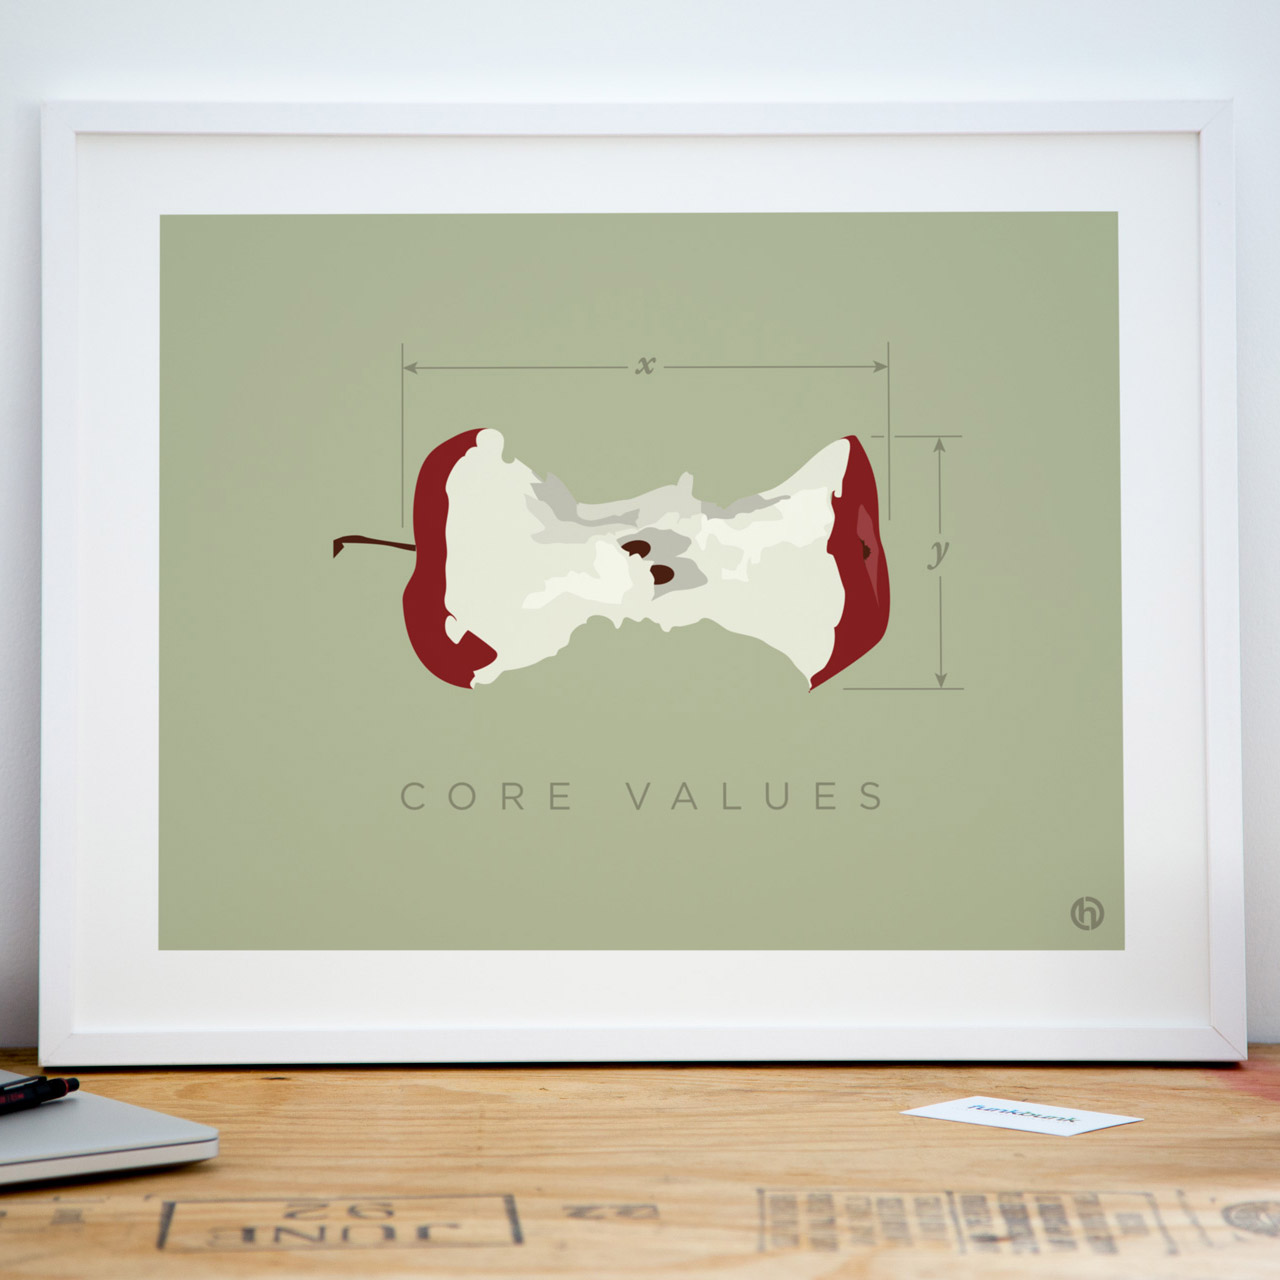 Core values office jargon art print poster